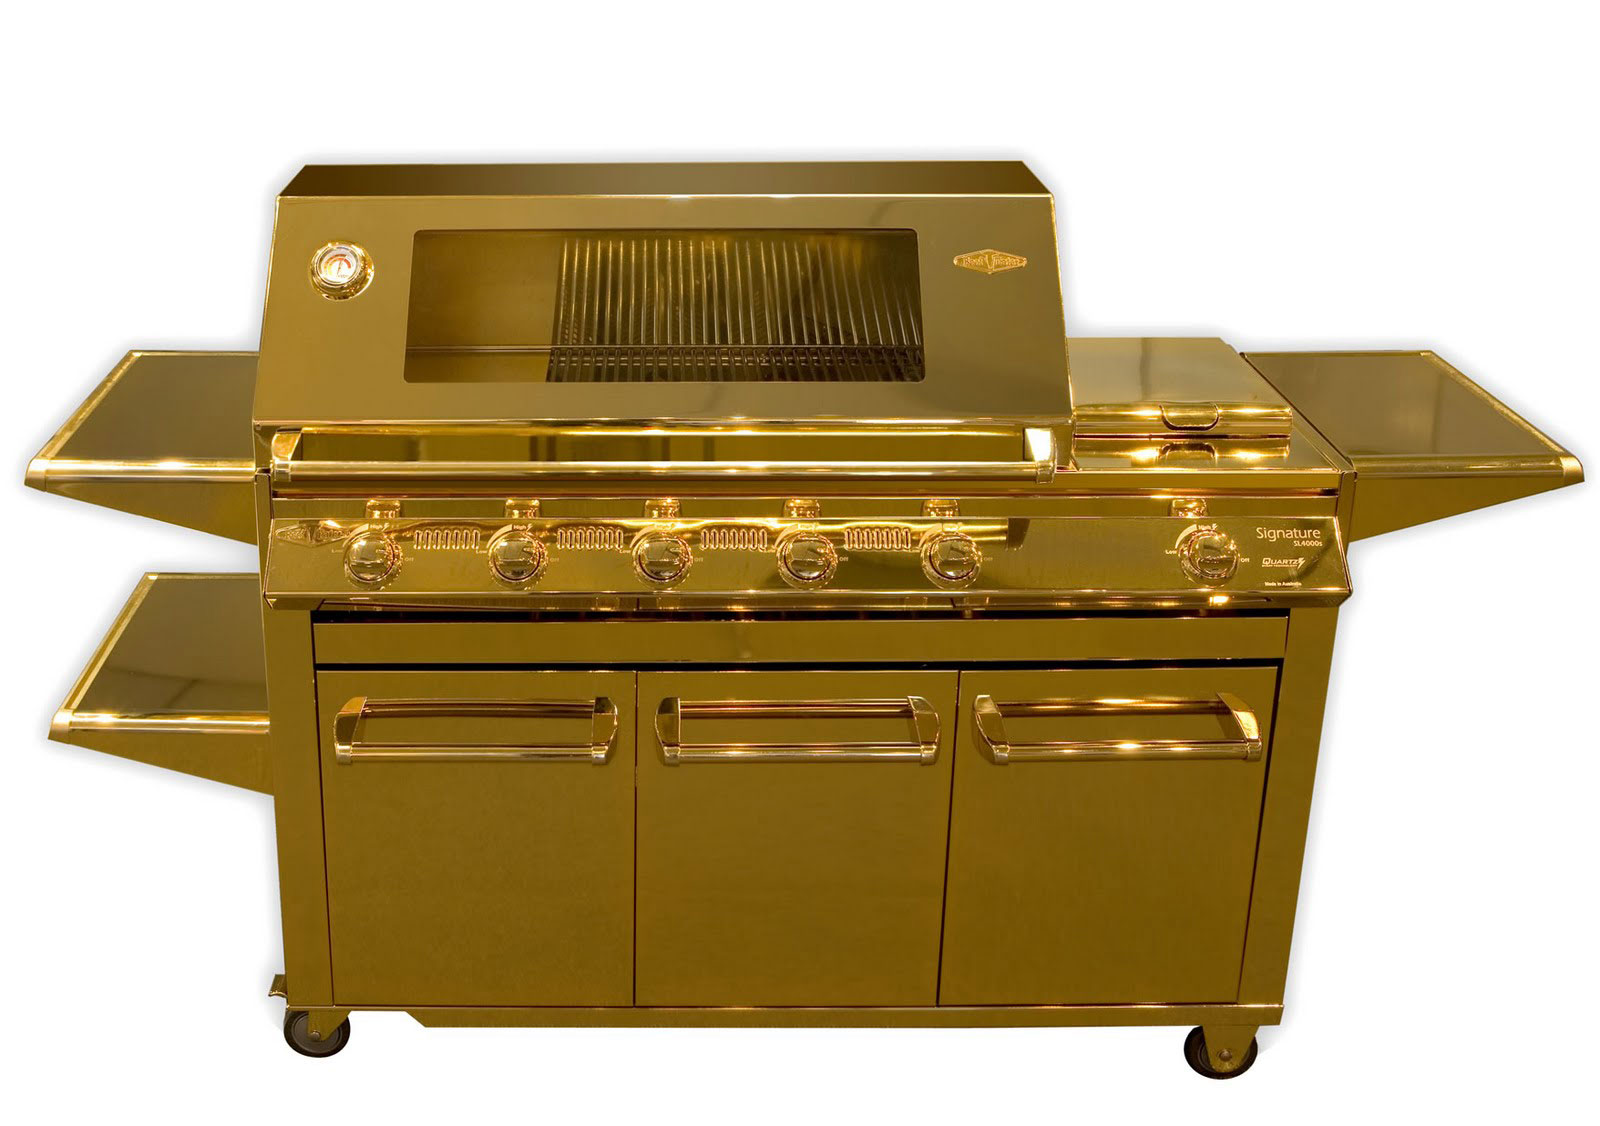 bbq-month-top-steel-grills-grilling-gadgets